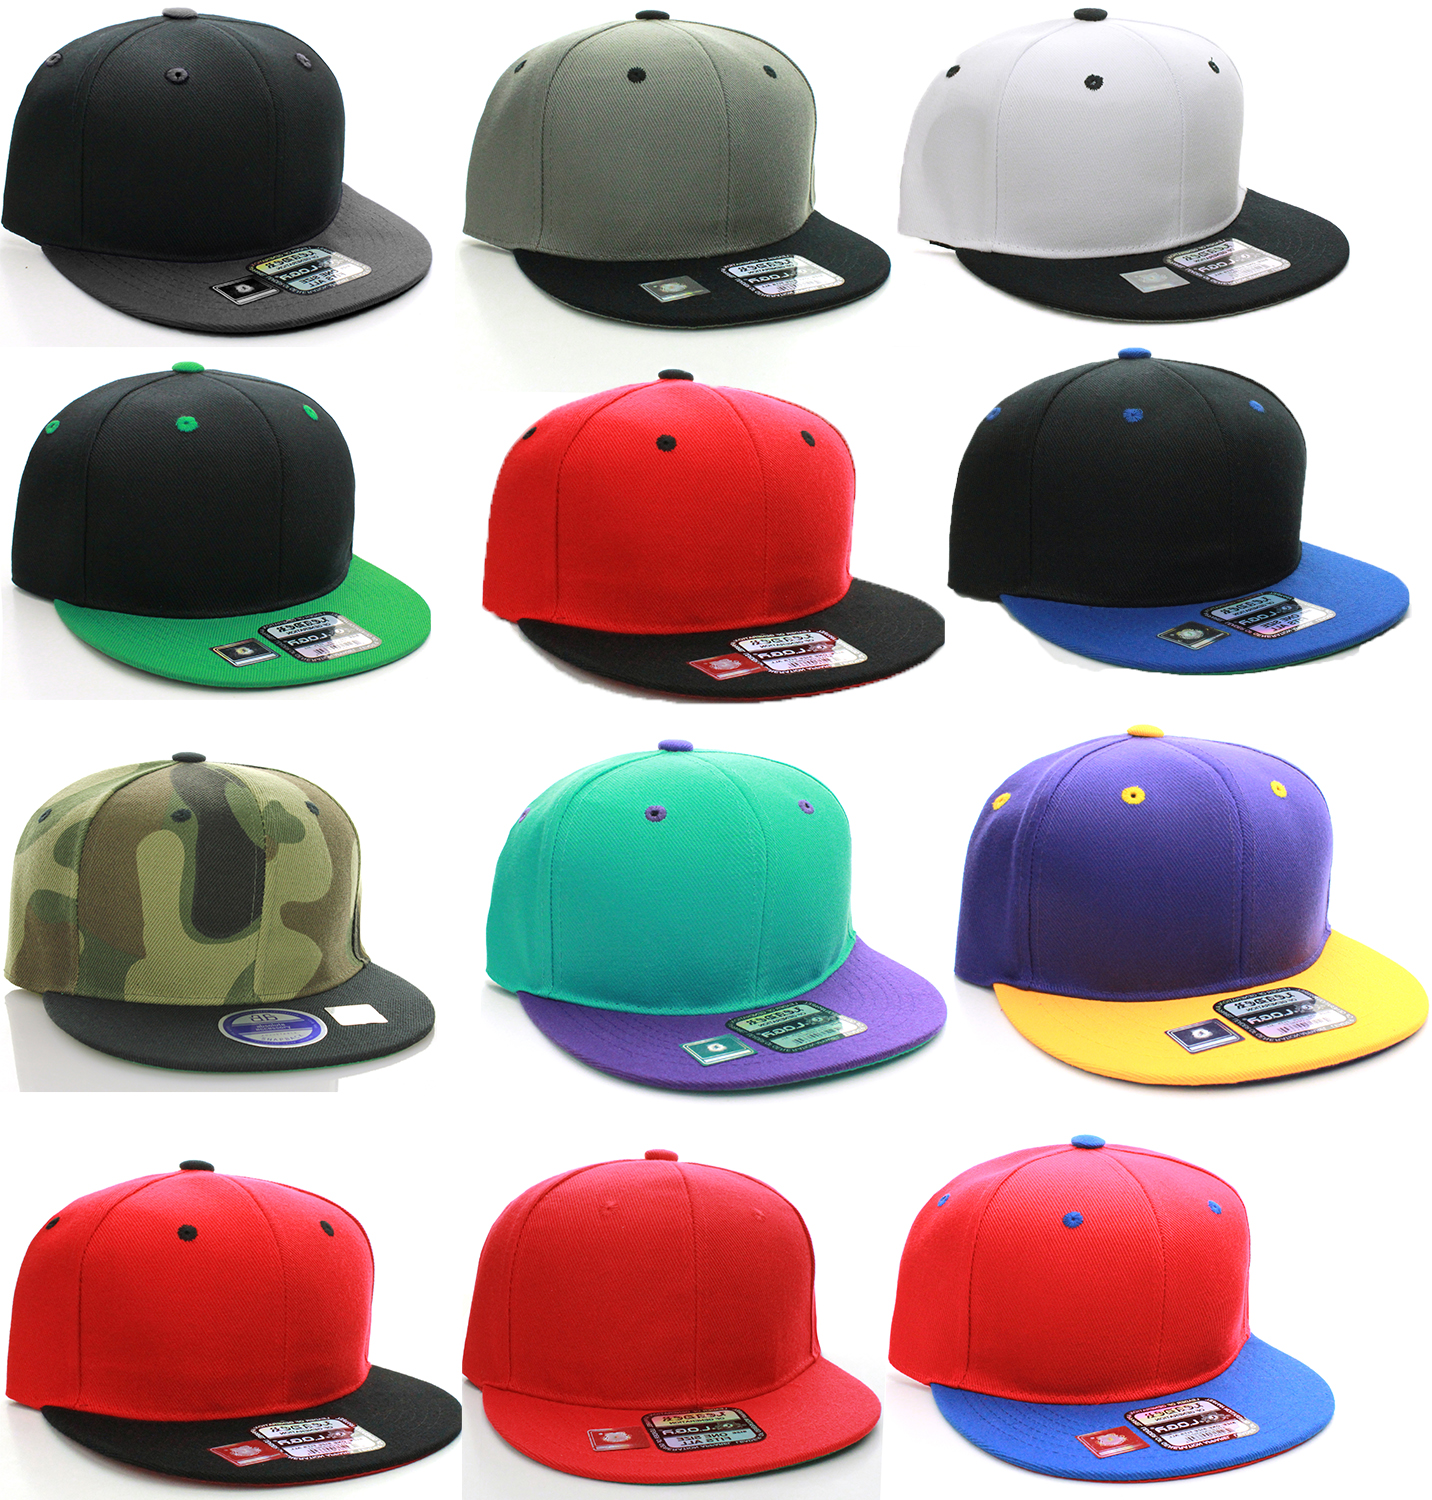 e91c3768e1d45 Details about D&I Classic Blank Snapback Flat Bill Visor Hat Cap w  Adjustable Snap Back